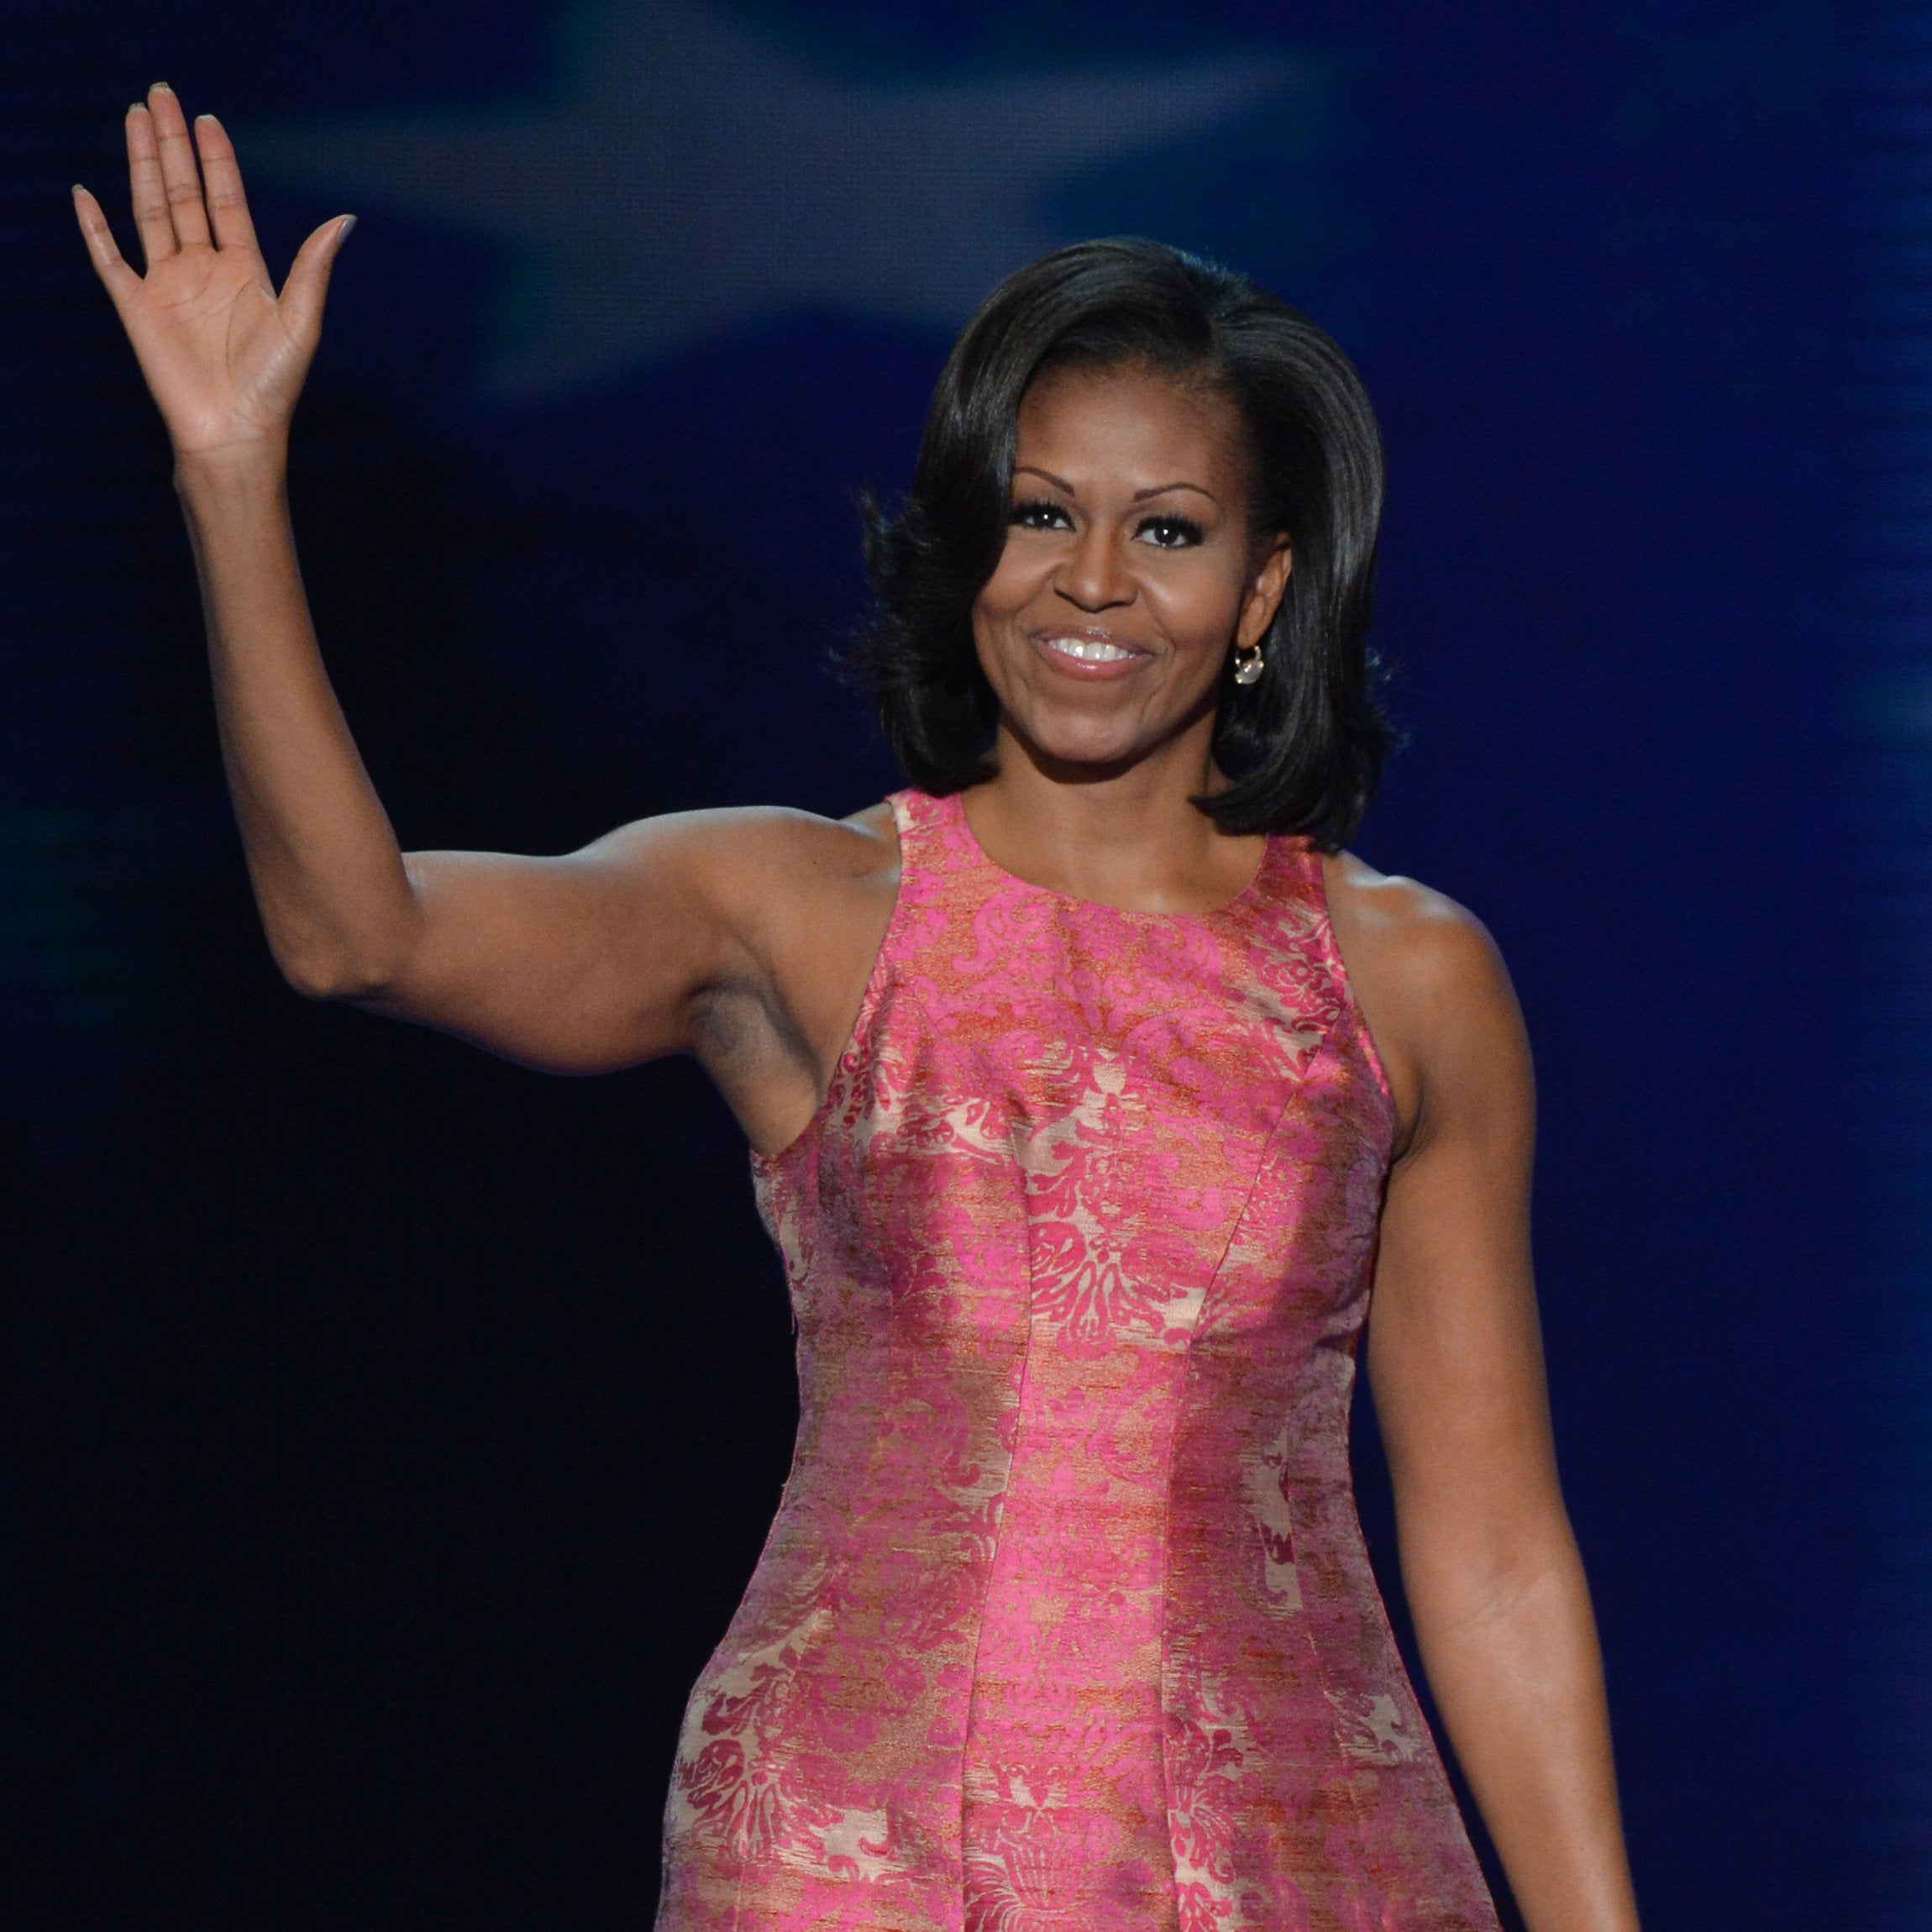 15 Times Michelle Obama Rocked a Black Designer And Killed It, Obvi